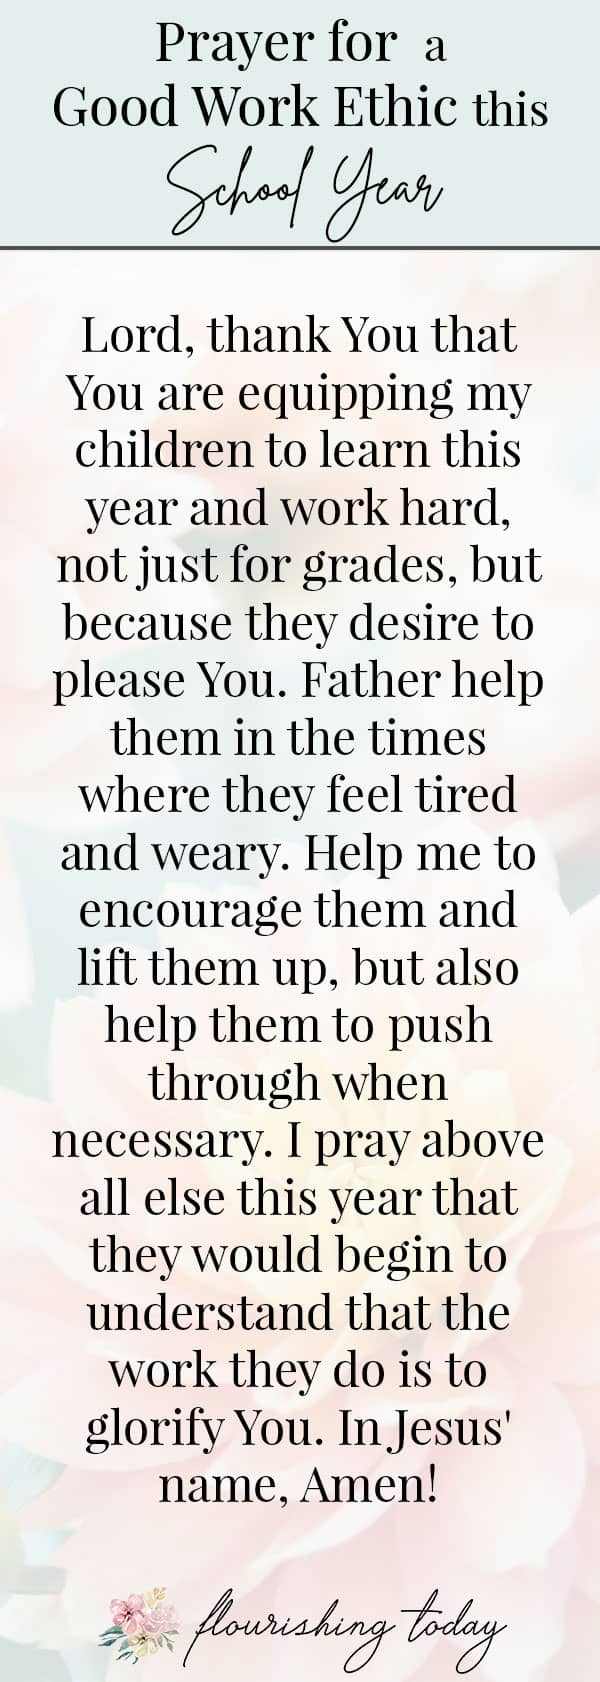 It's time for back to school and what better way to prepare than prayer for your kids? Here you'll find prayers for students, their teachers and for God's guidance for them. Don't forget to grab your free printable prayer bookmarks while you're there! #backtoschool #newschoolyear #school #prayers